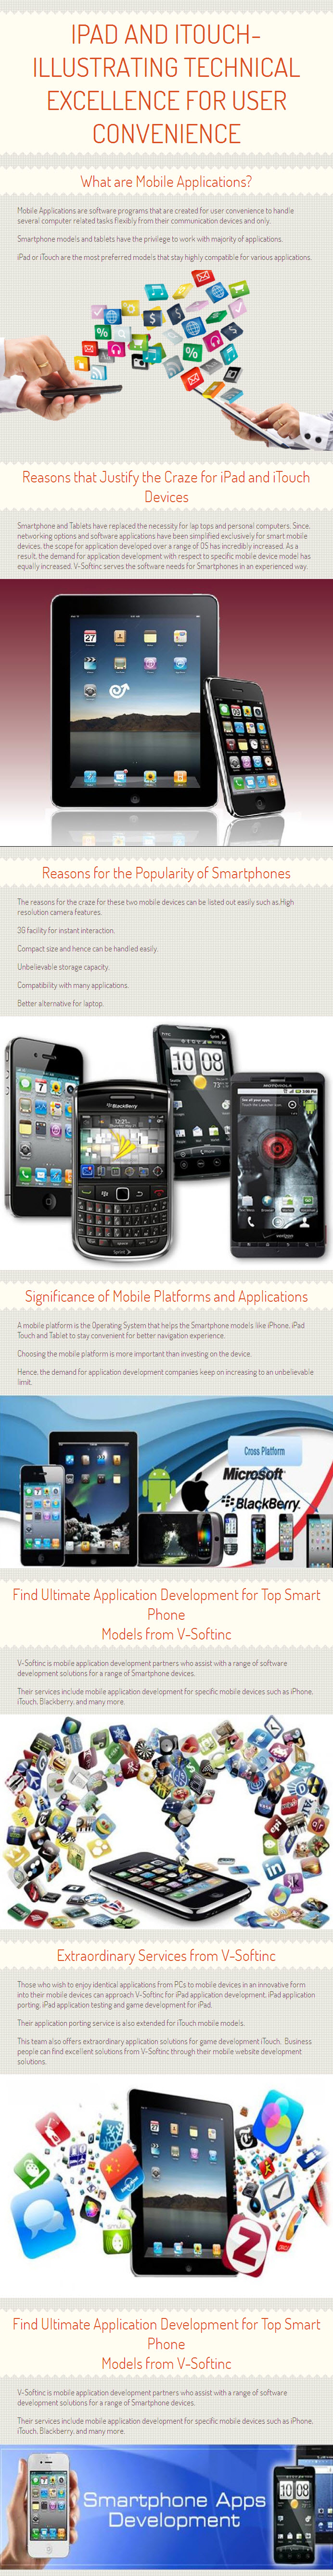 Topic-iPad and iTouch- Illustrating technical excellence for user convenience